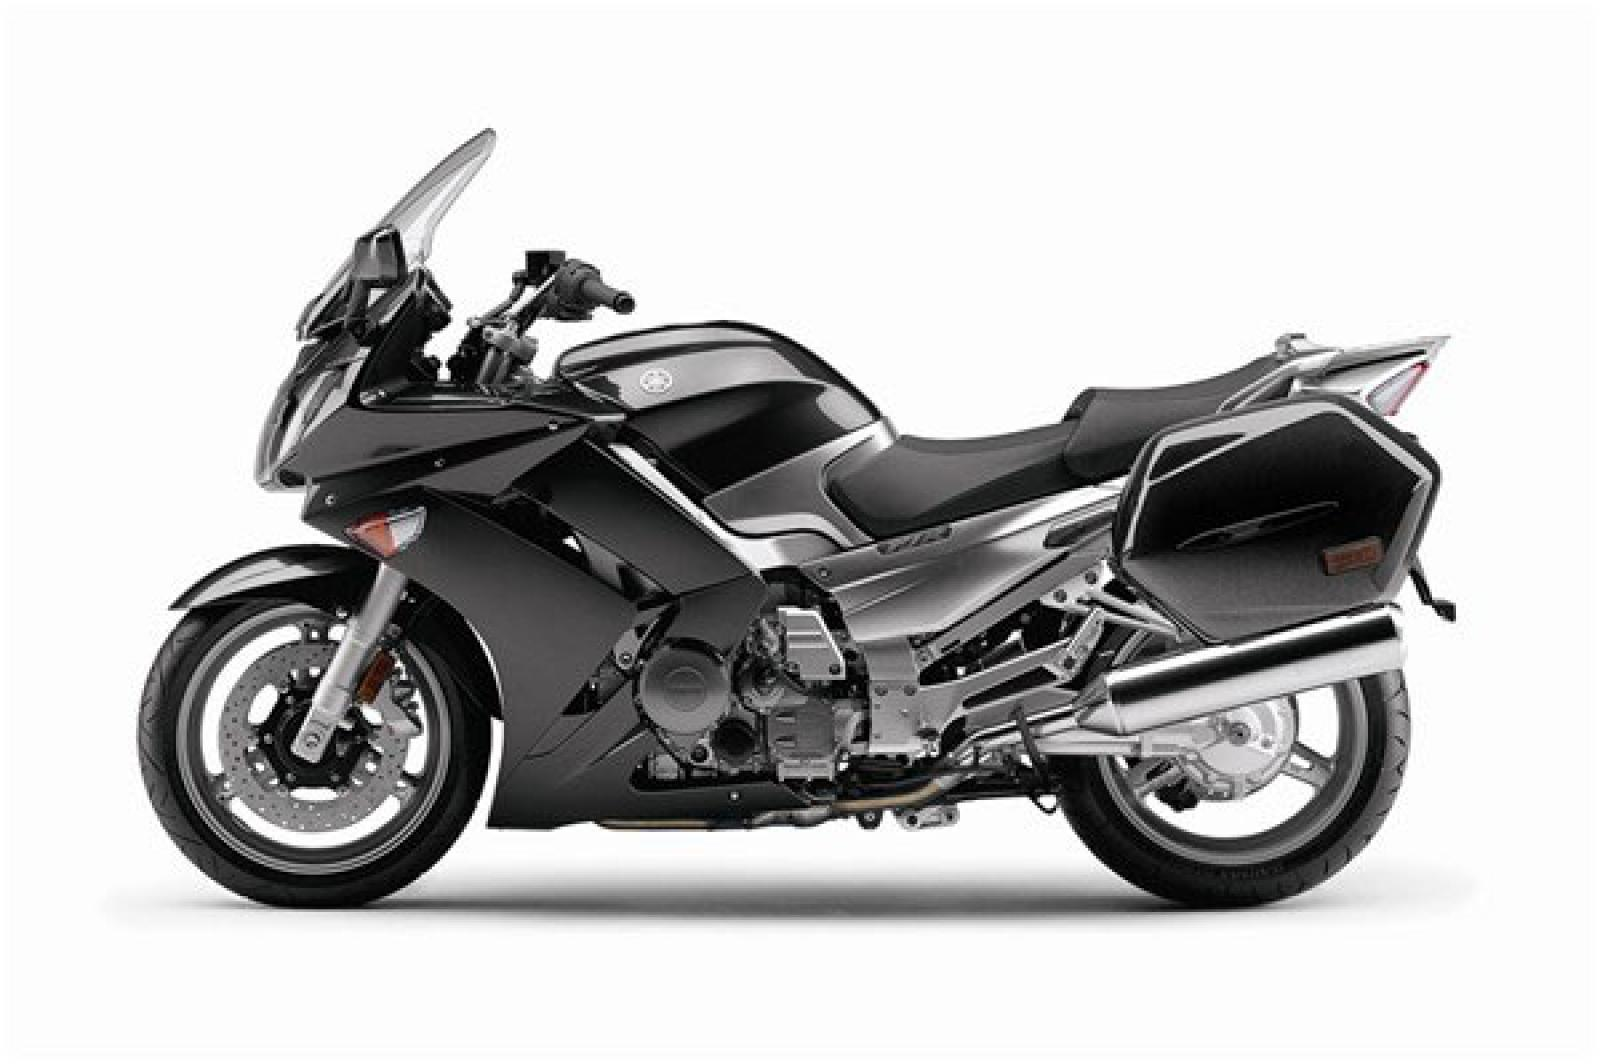 2009 yamaha fjr 1300 ae moto zombdrive com. Black Bedroom Furniture Sets. Home Design Ideas